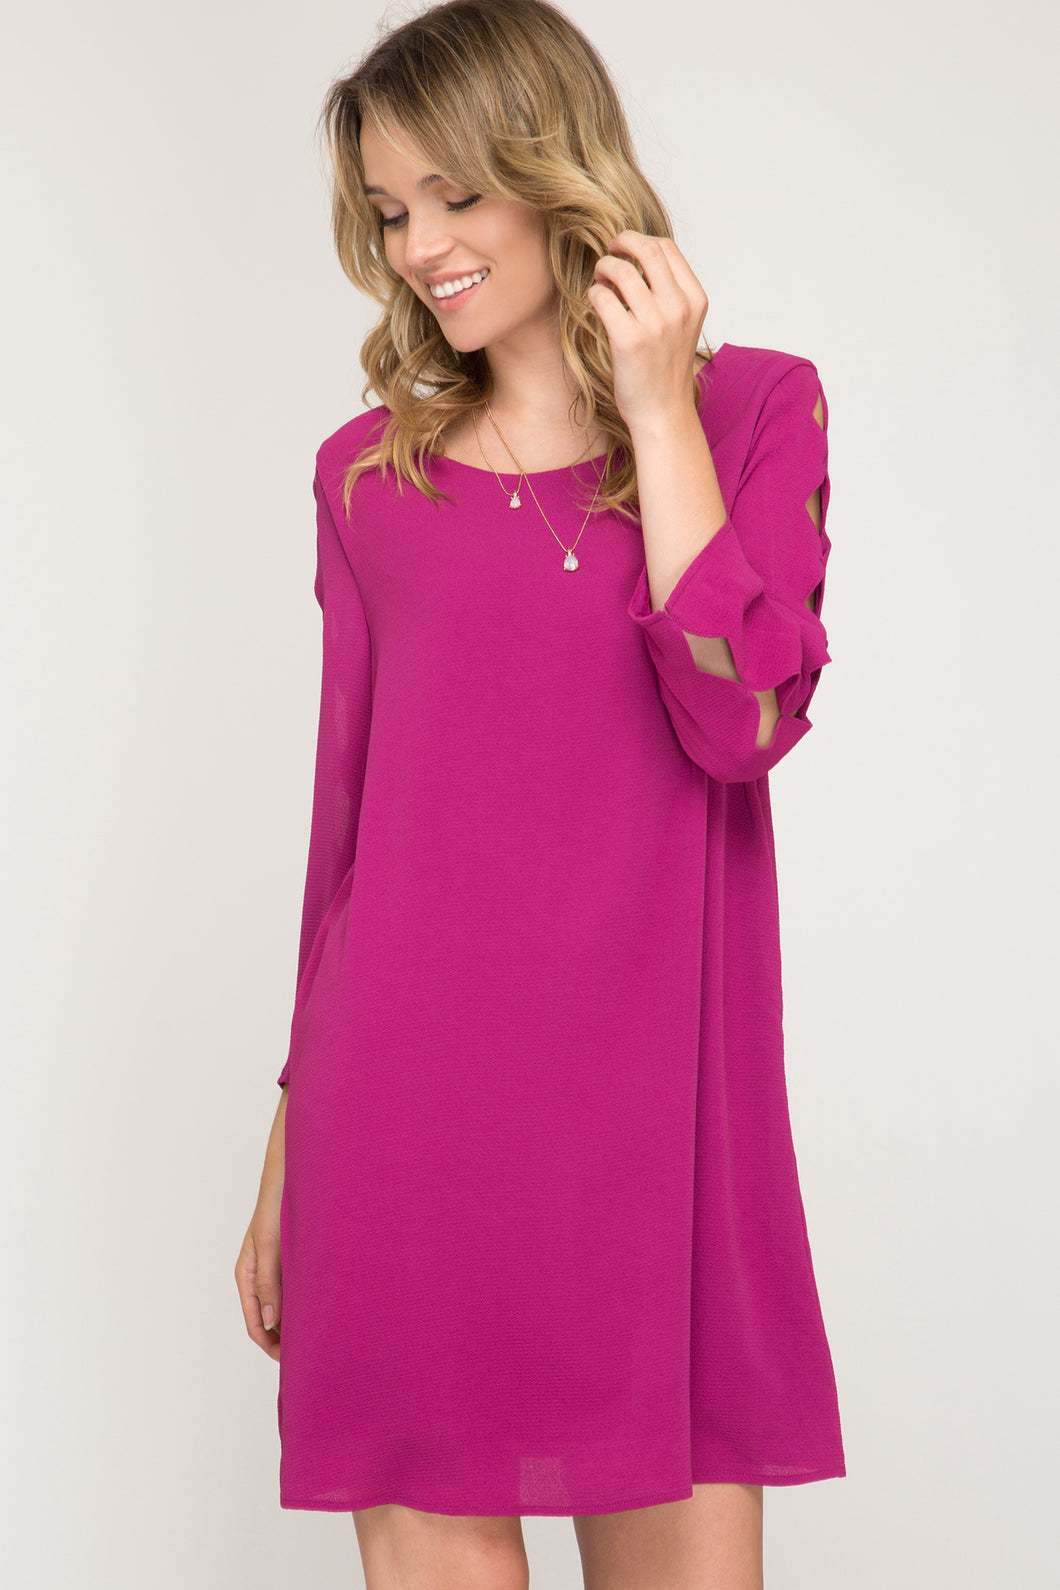 3/4 Sleeve Dress with Scalloped Sleeve